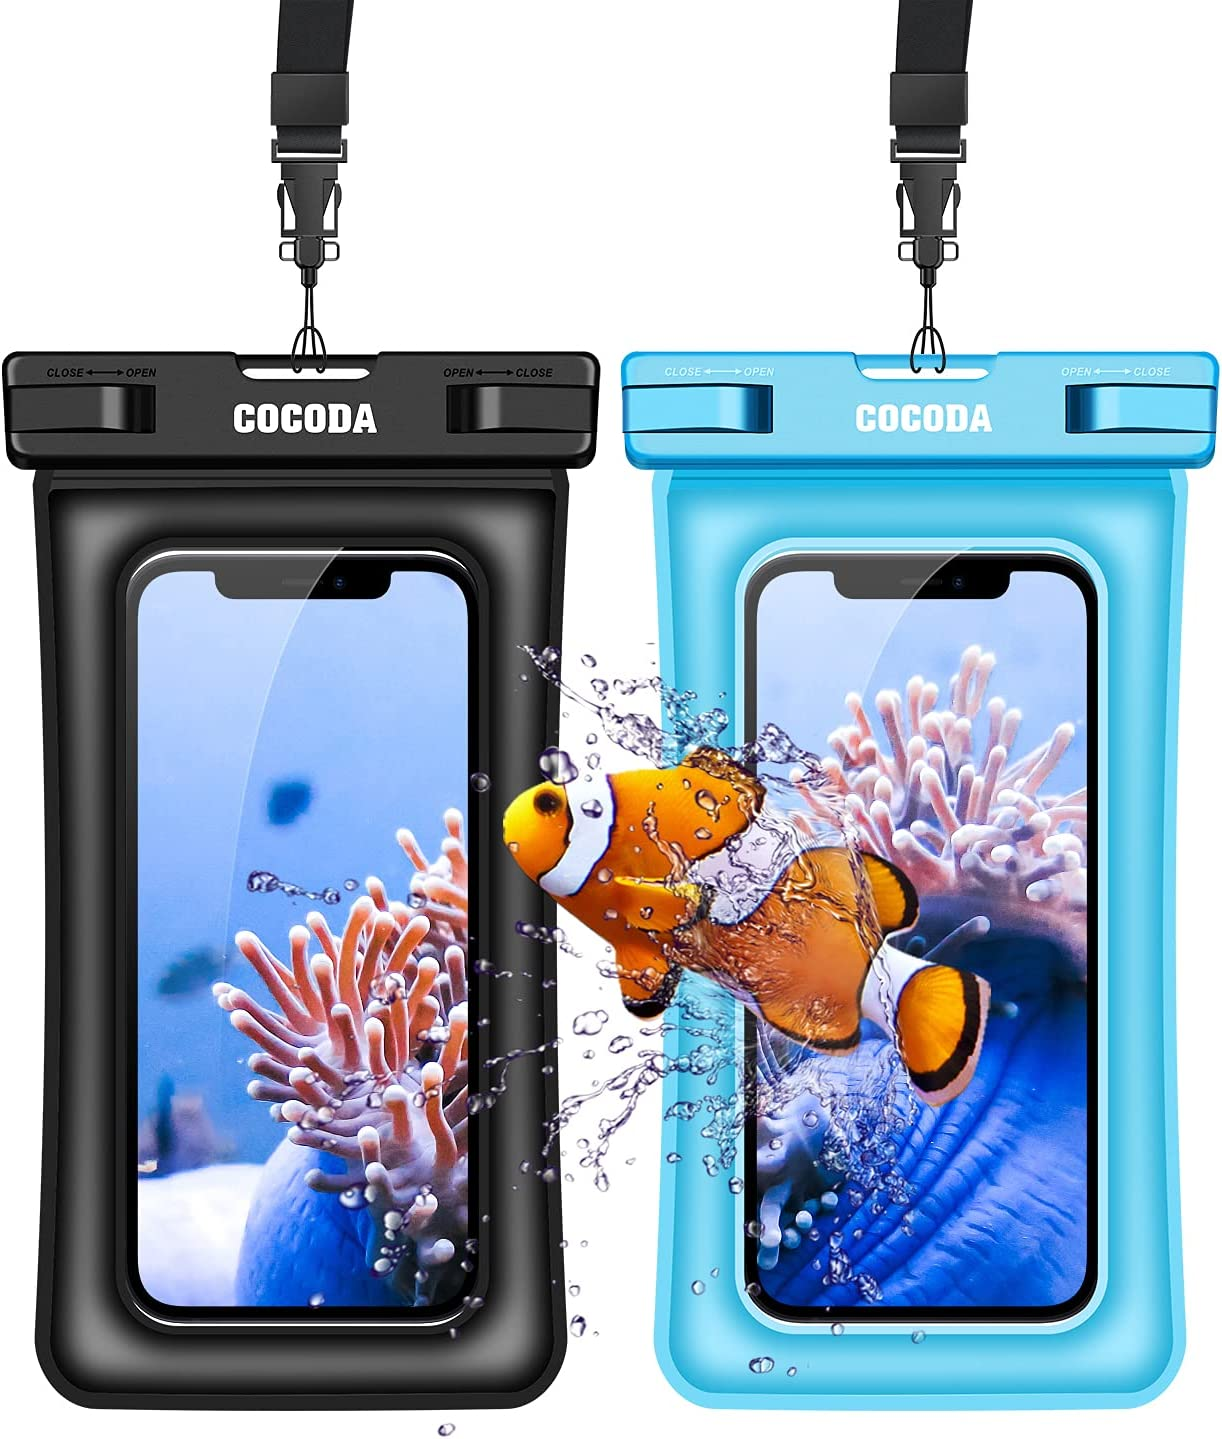 Cocod Waterproof Phone Pouch Floating, 2 Pack IPX8 Waterproof Phone Case Dry Bag Compatible with iPhone 12 Pro Max/11 Pro Max/XR, Galaxy S21 Ultra/S20/Note 10 Up to 7